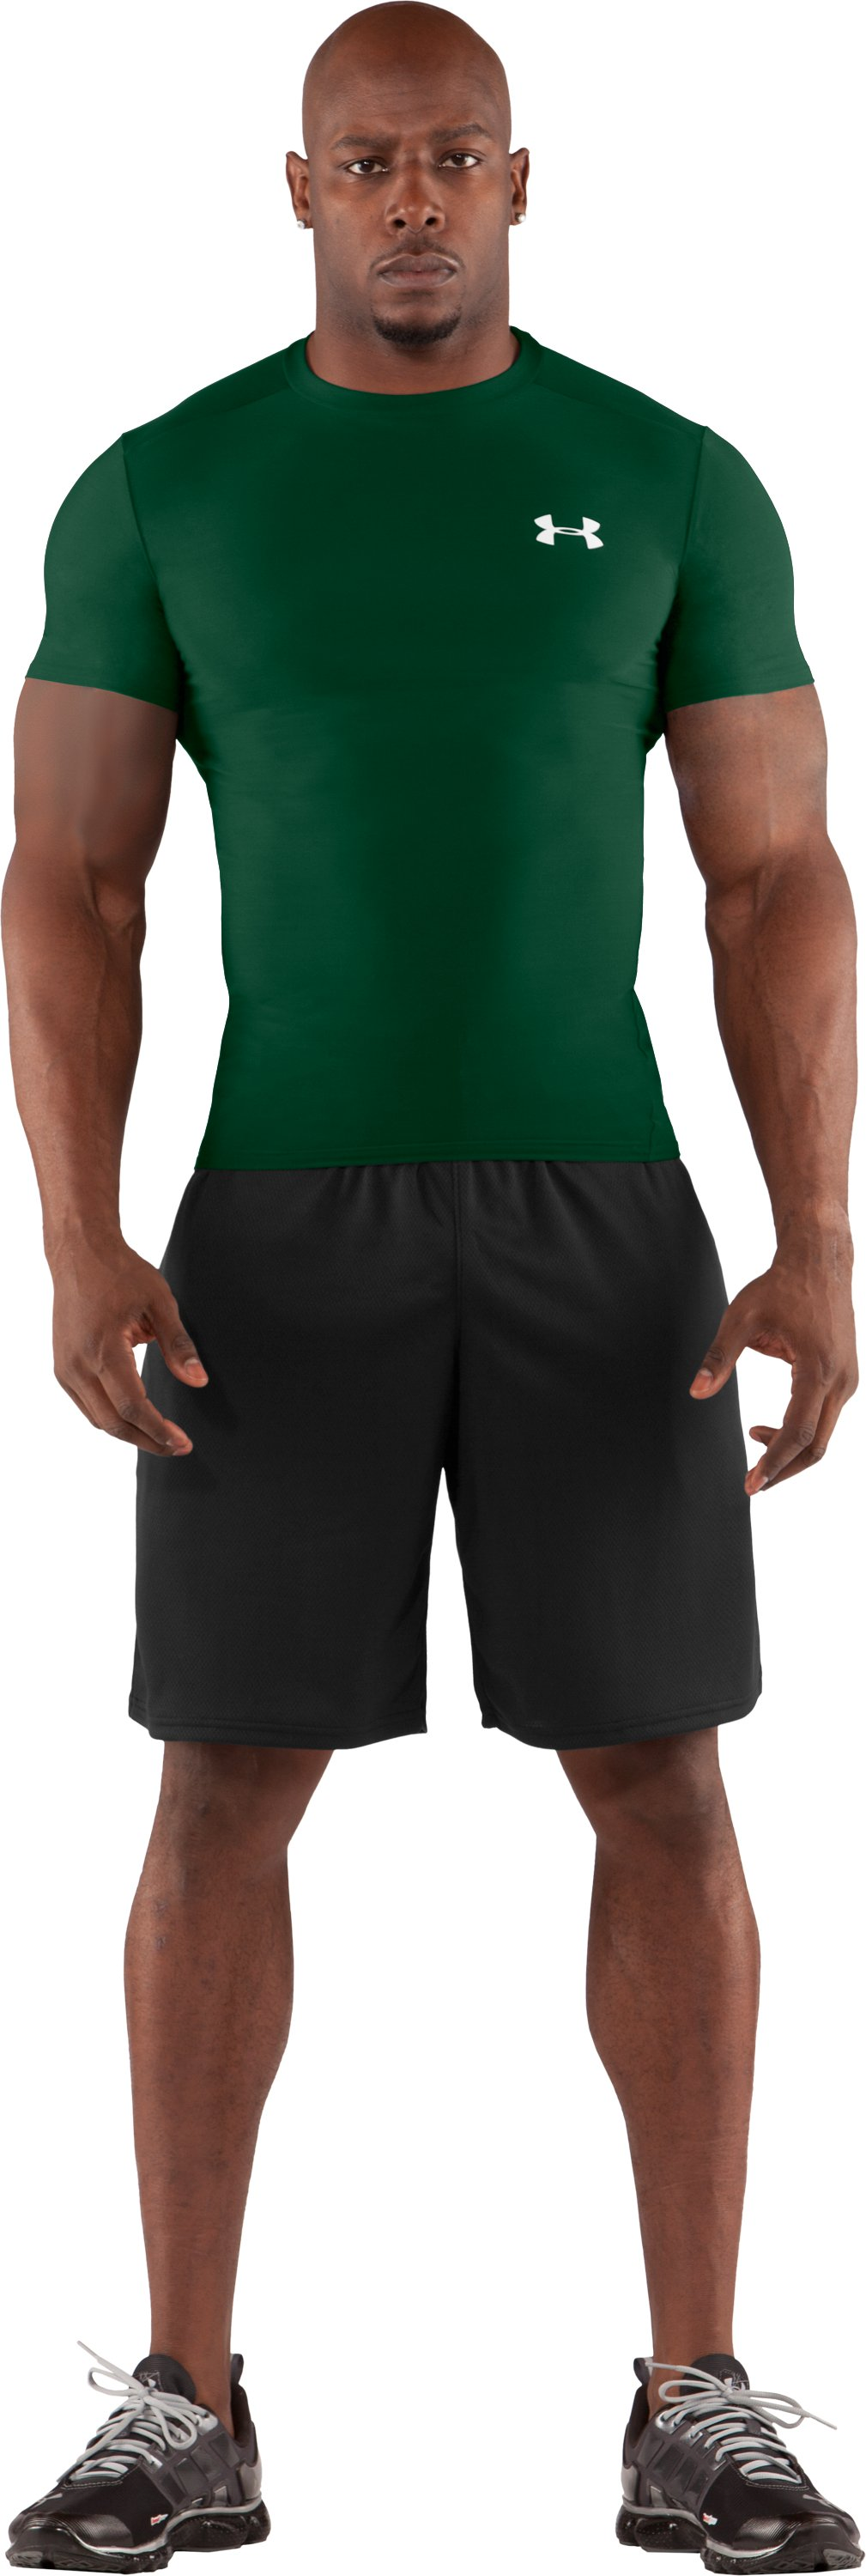 Men's HeatGear® Compression Short Sleeve T-Shirt, Forest Green, Front